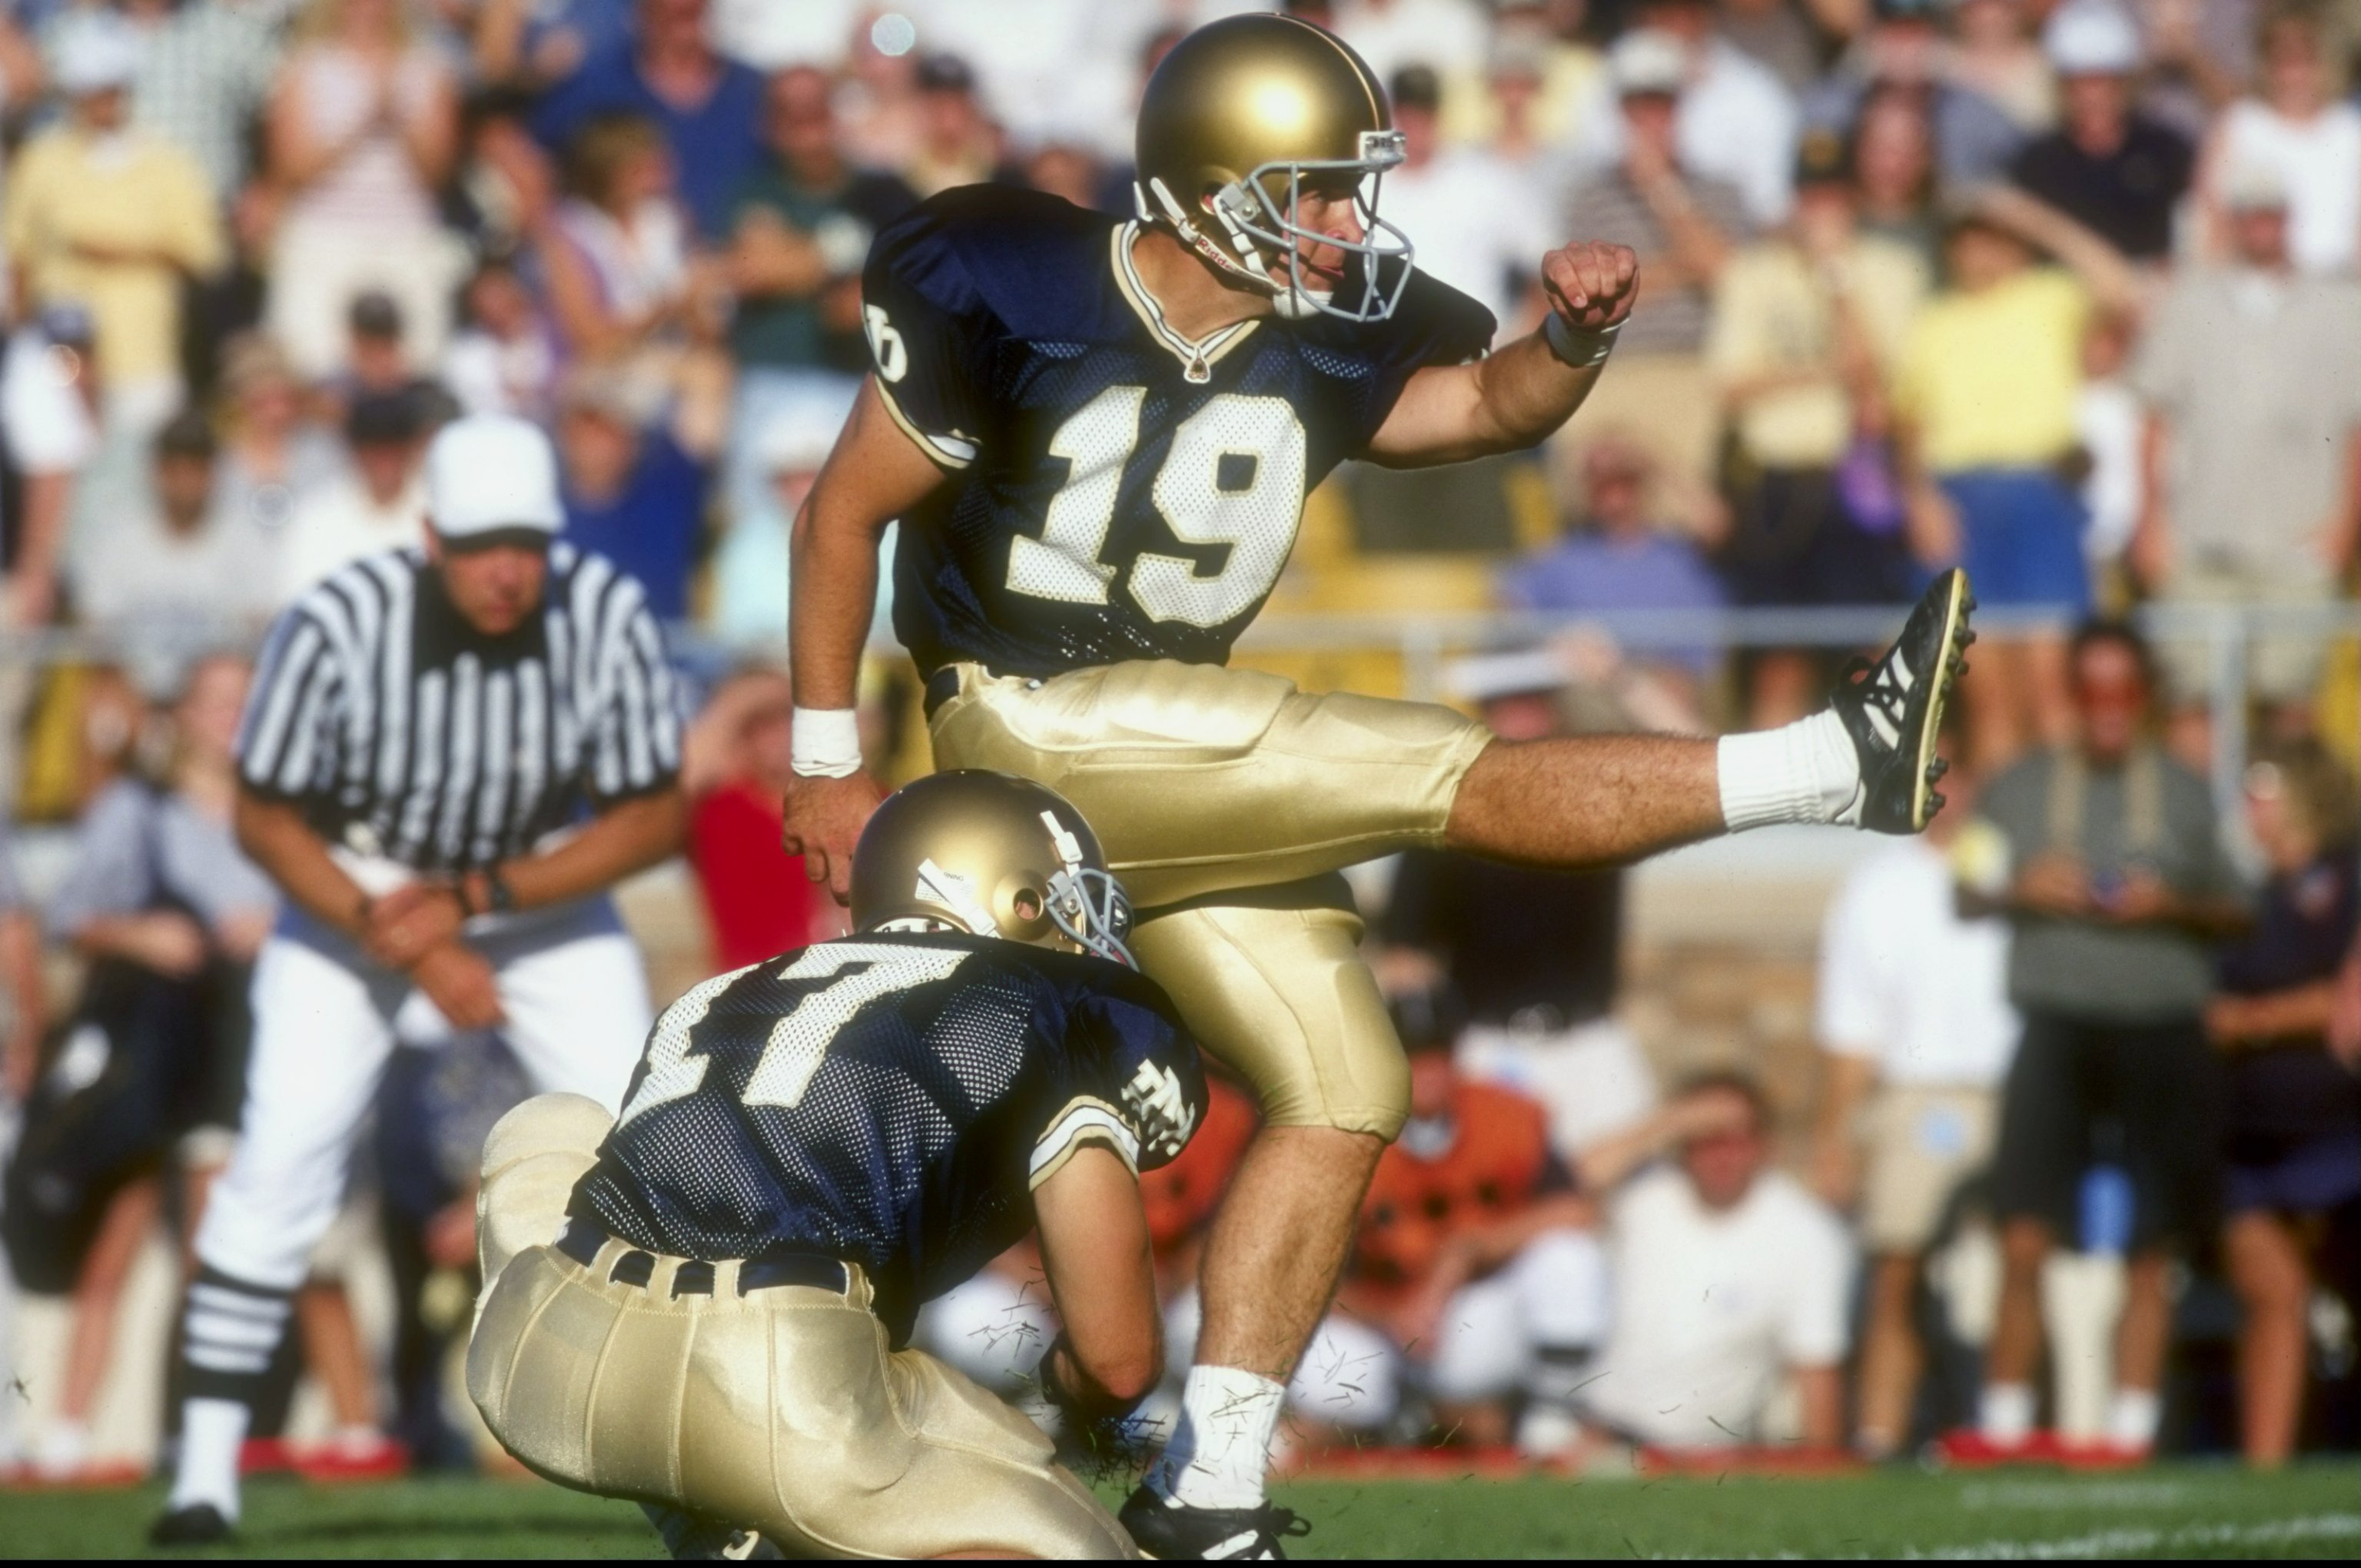 5 Sep 1998:  Place kicker Jim Sanson #19 of the Notre Dame Fighting Irish in action during a game against the Michigan Wolverines at the Notre Dame Stadium in South Bend, Indiana. The Fighting Irish defeated the Wolverines 36-20.